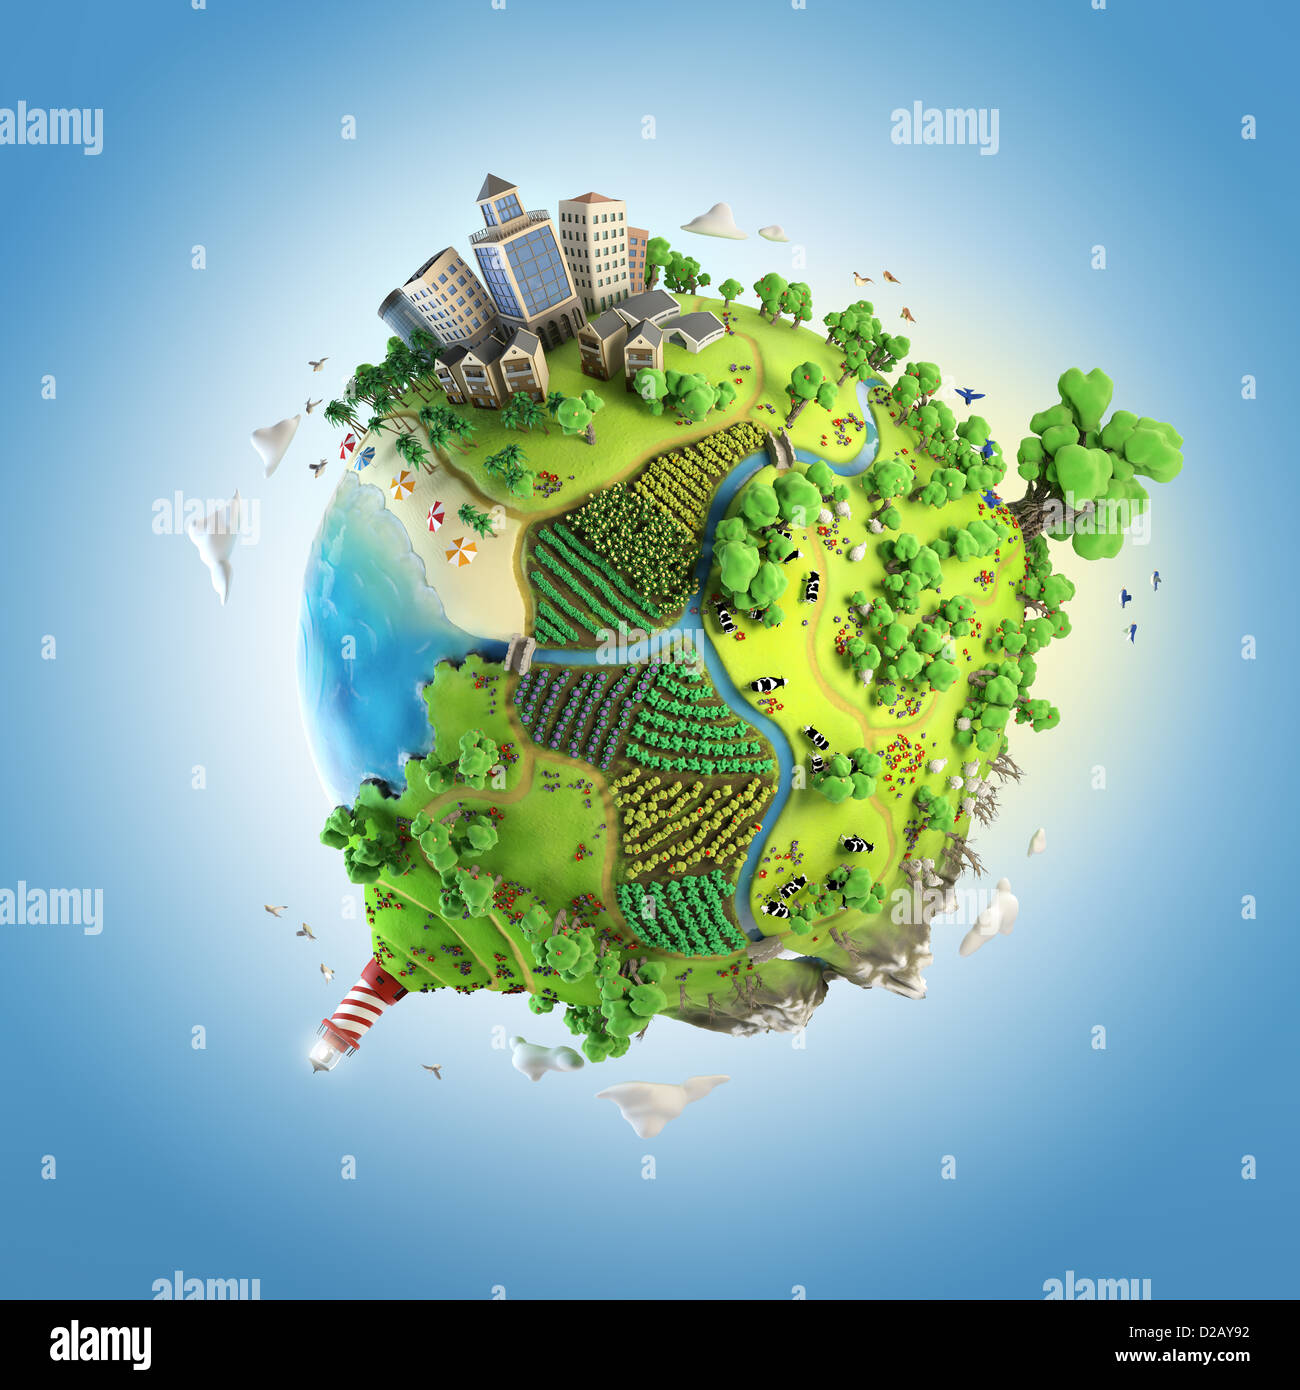 globe concept showing a green, peaceful and idyllic life style in the world in a cartoon style - Stock Image